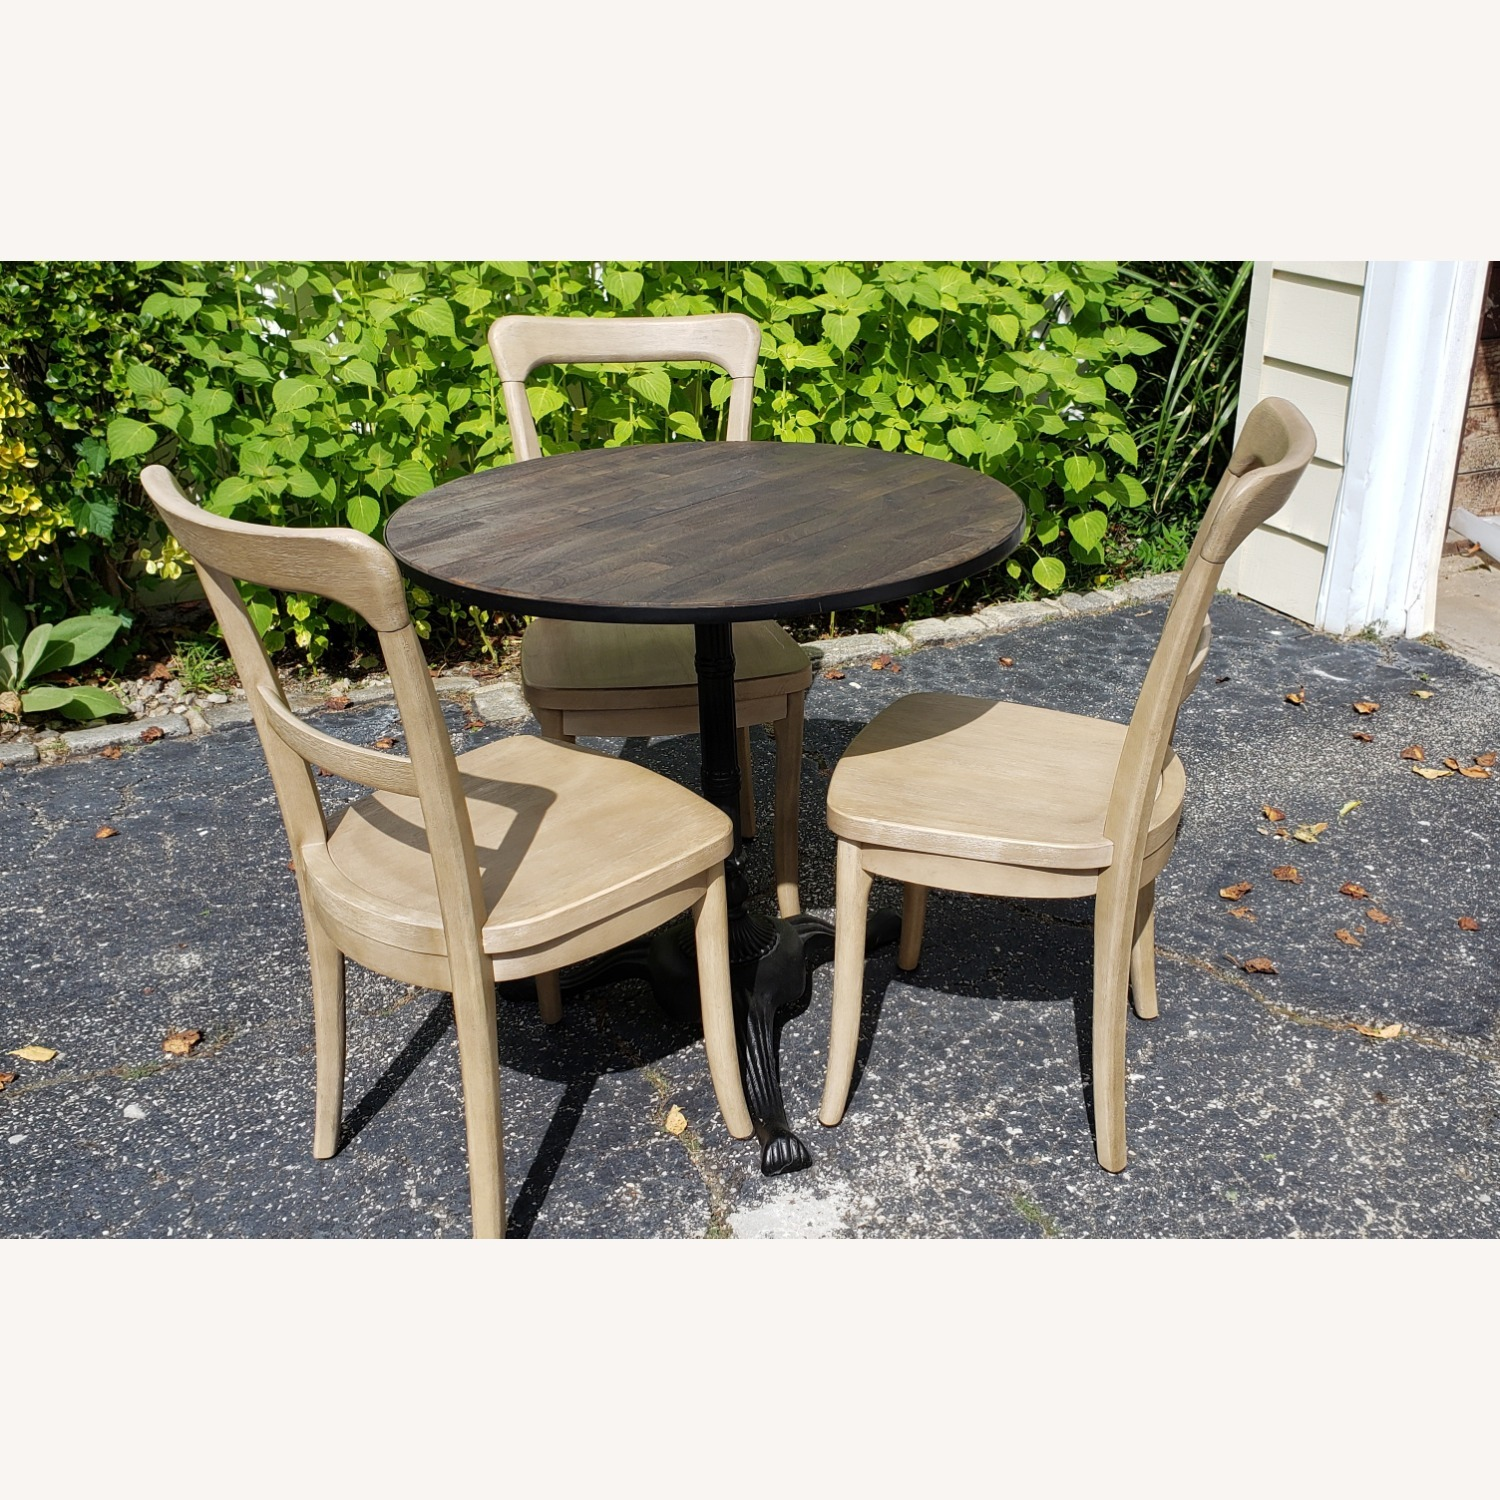 Pottery Barn Rae Bistro Dining Table Set with 3 Chairs - image-1